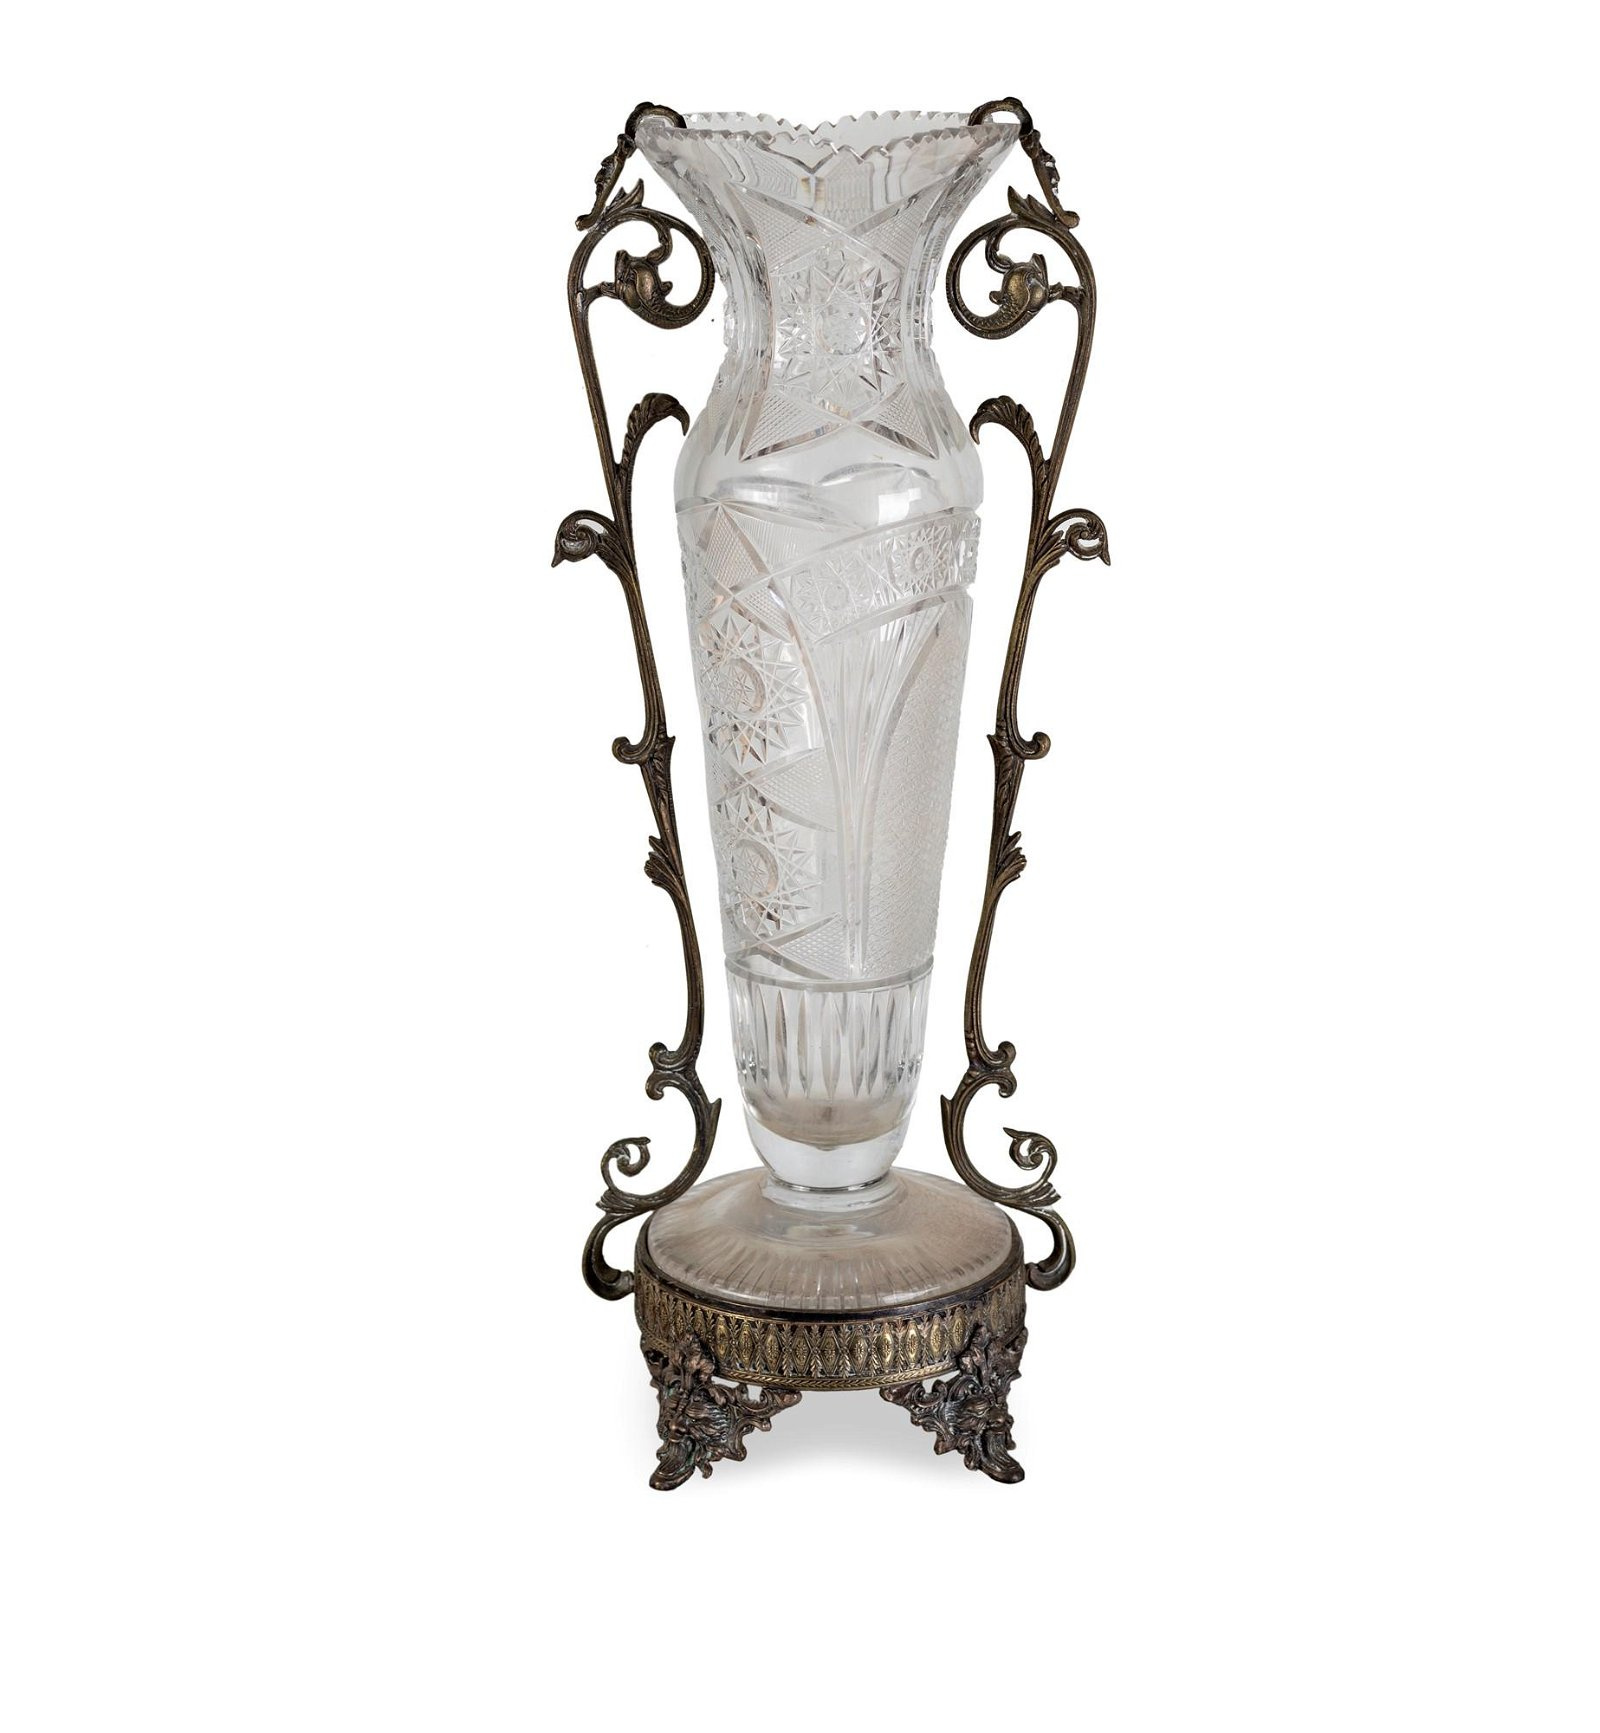 Crystal vase from the beginning of 20th century